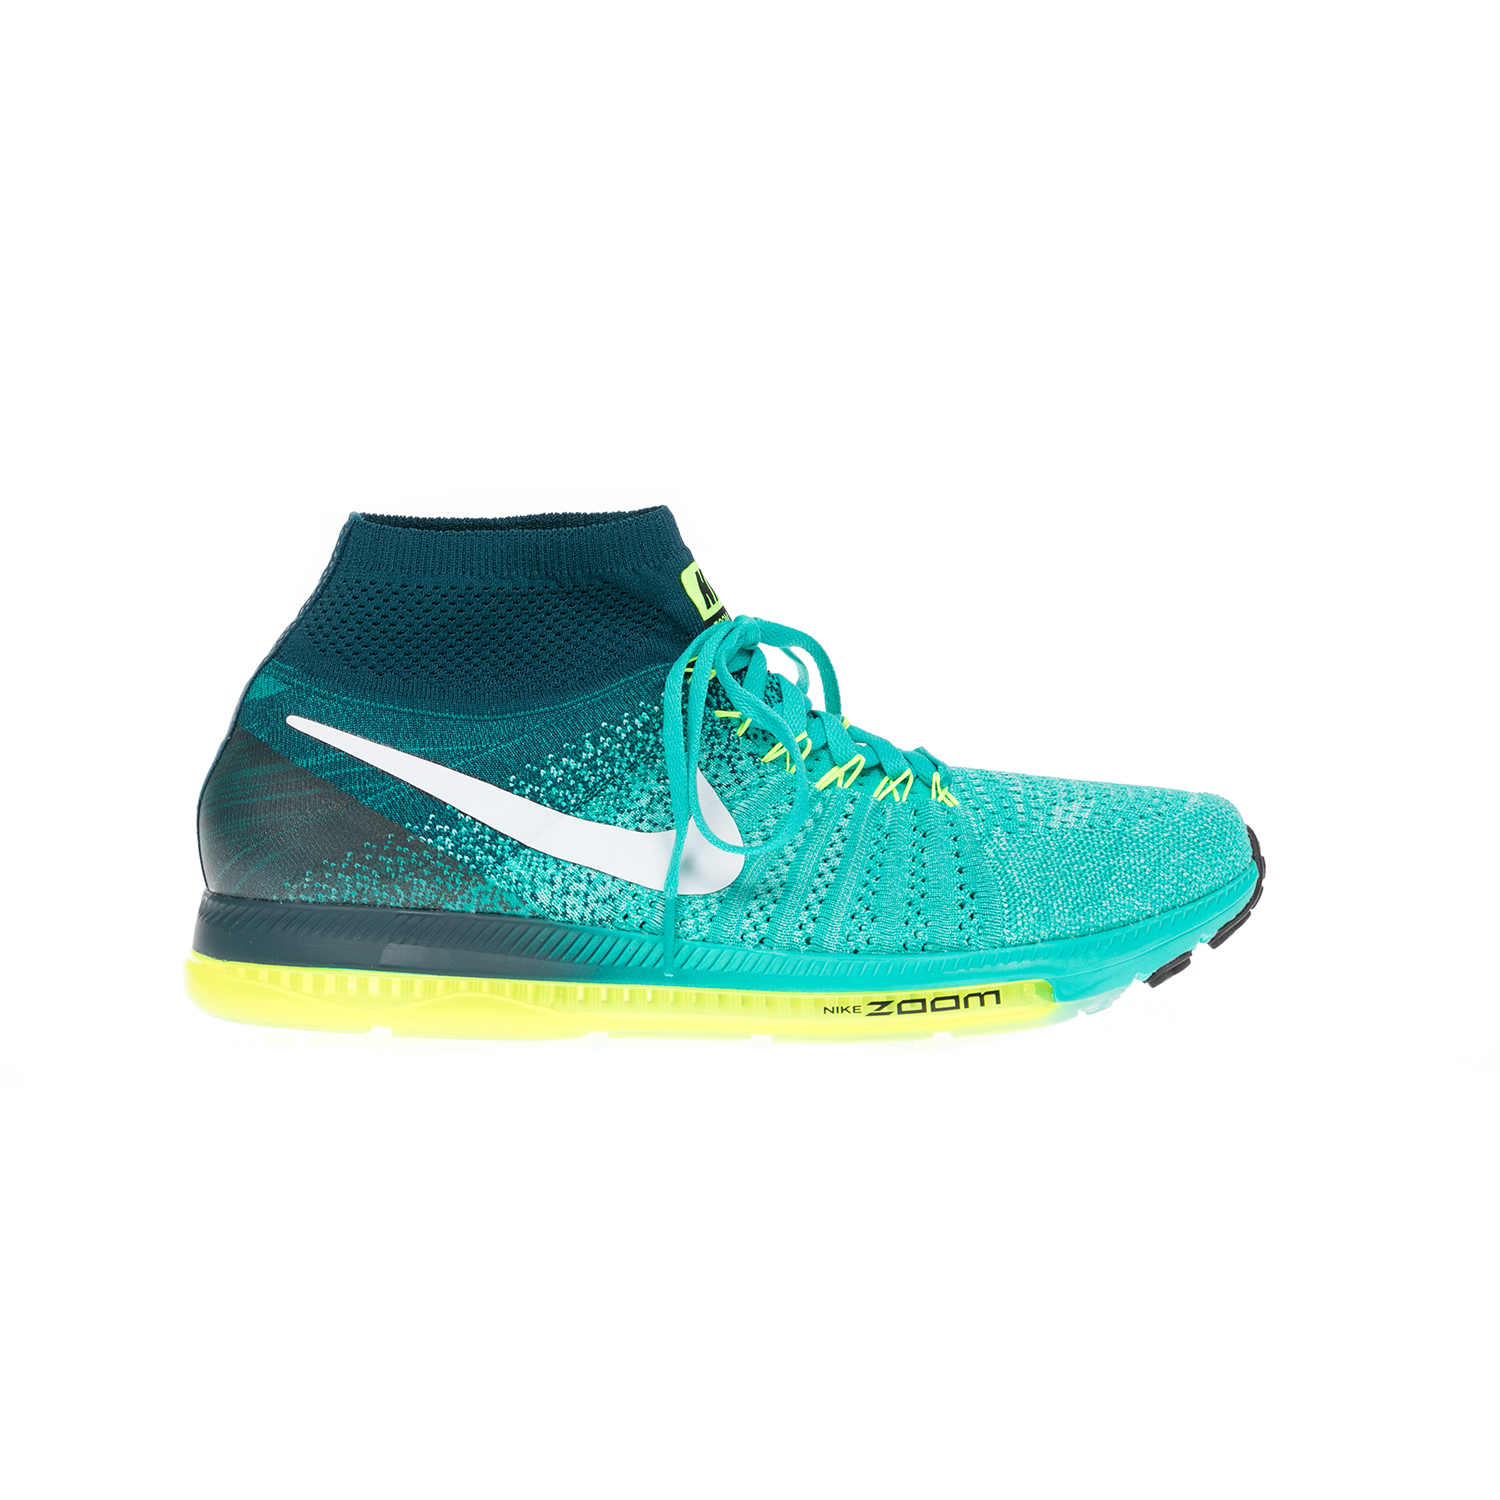 ee670f183ba NIKE – Αντρικά παπούτσια NIKE ZOOM ALL OUT FLYKNIT πράσινα. Factoryoutlet